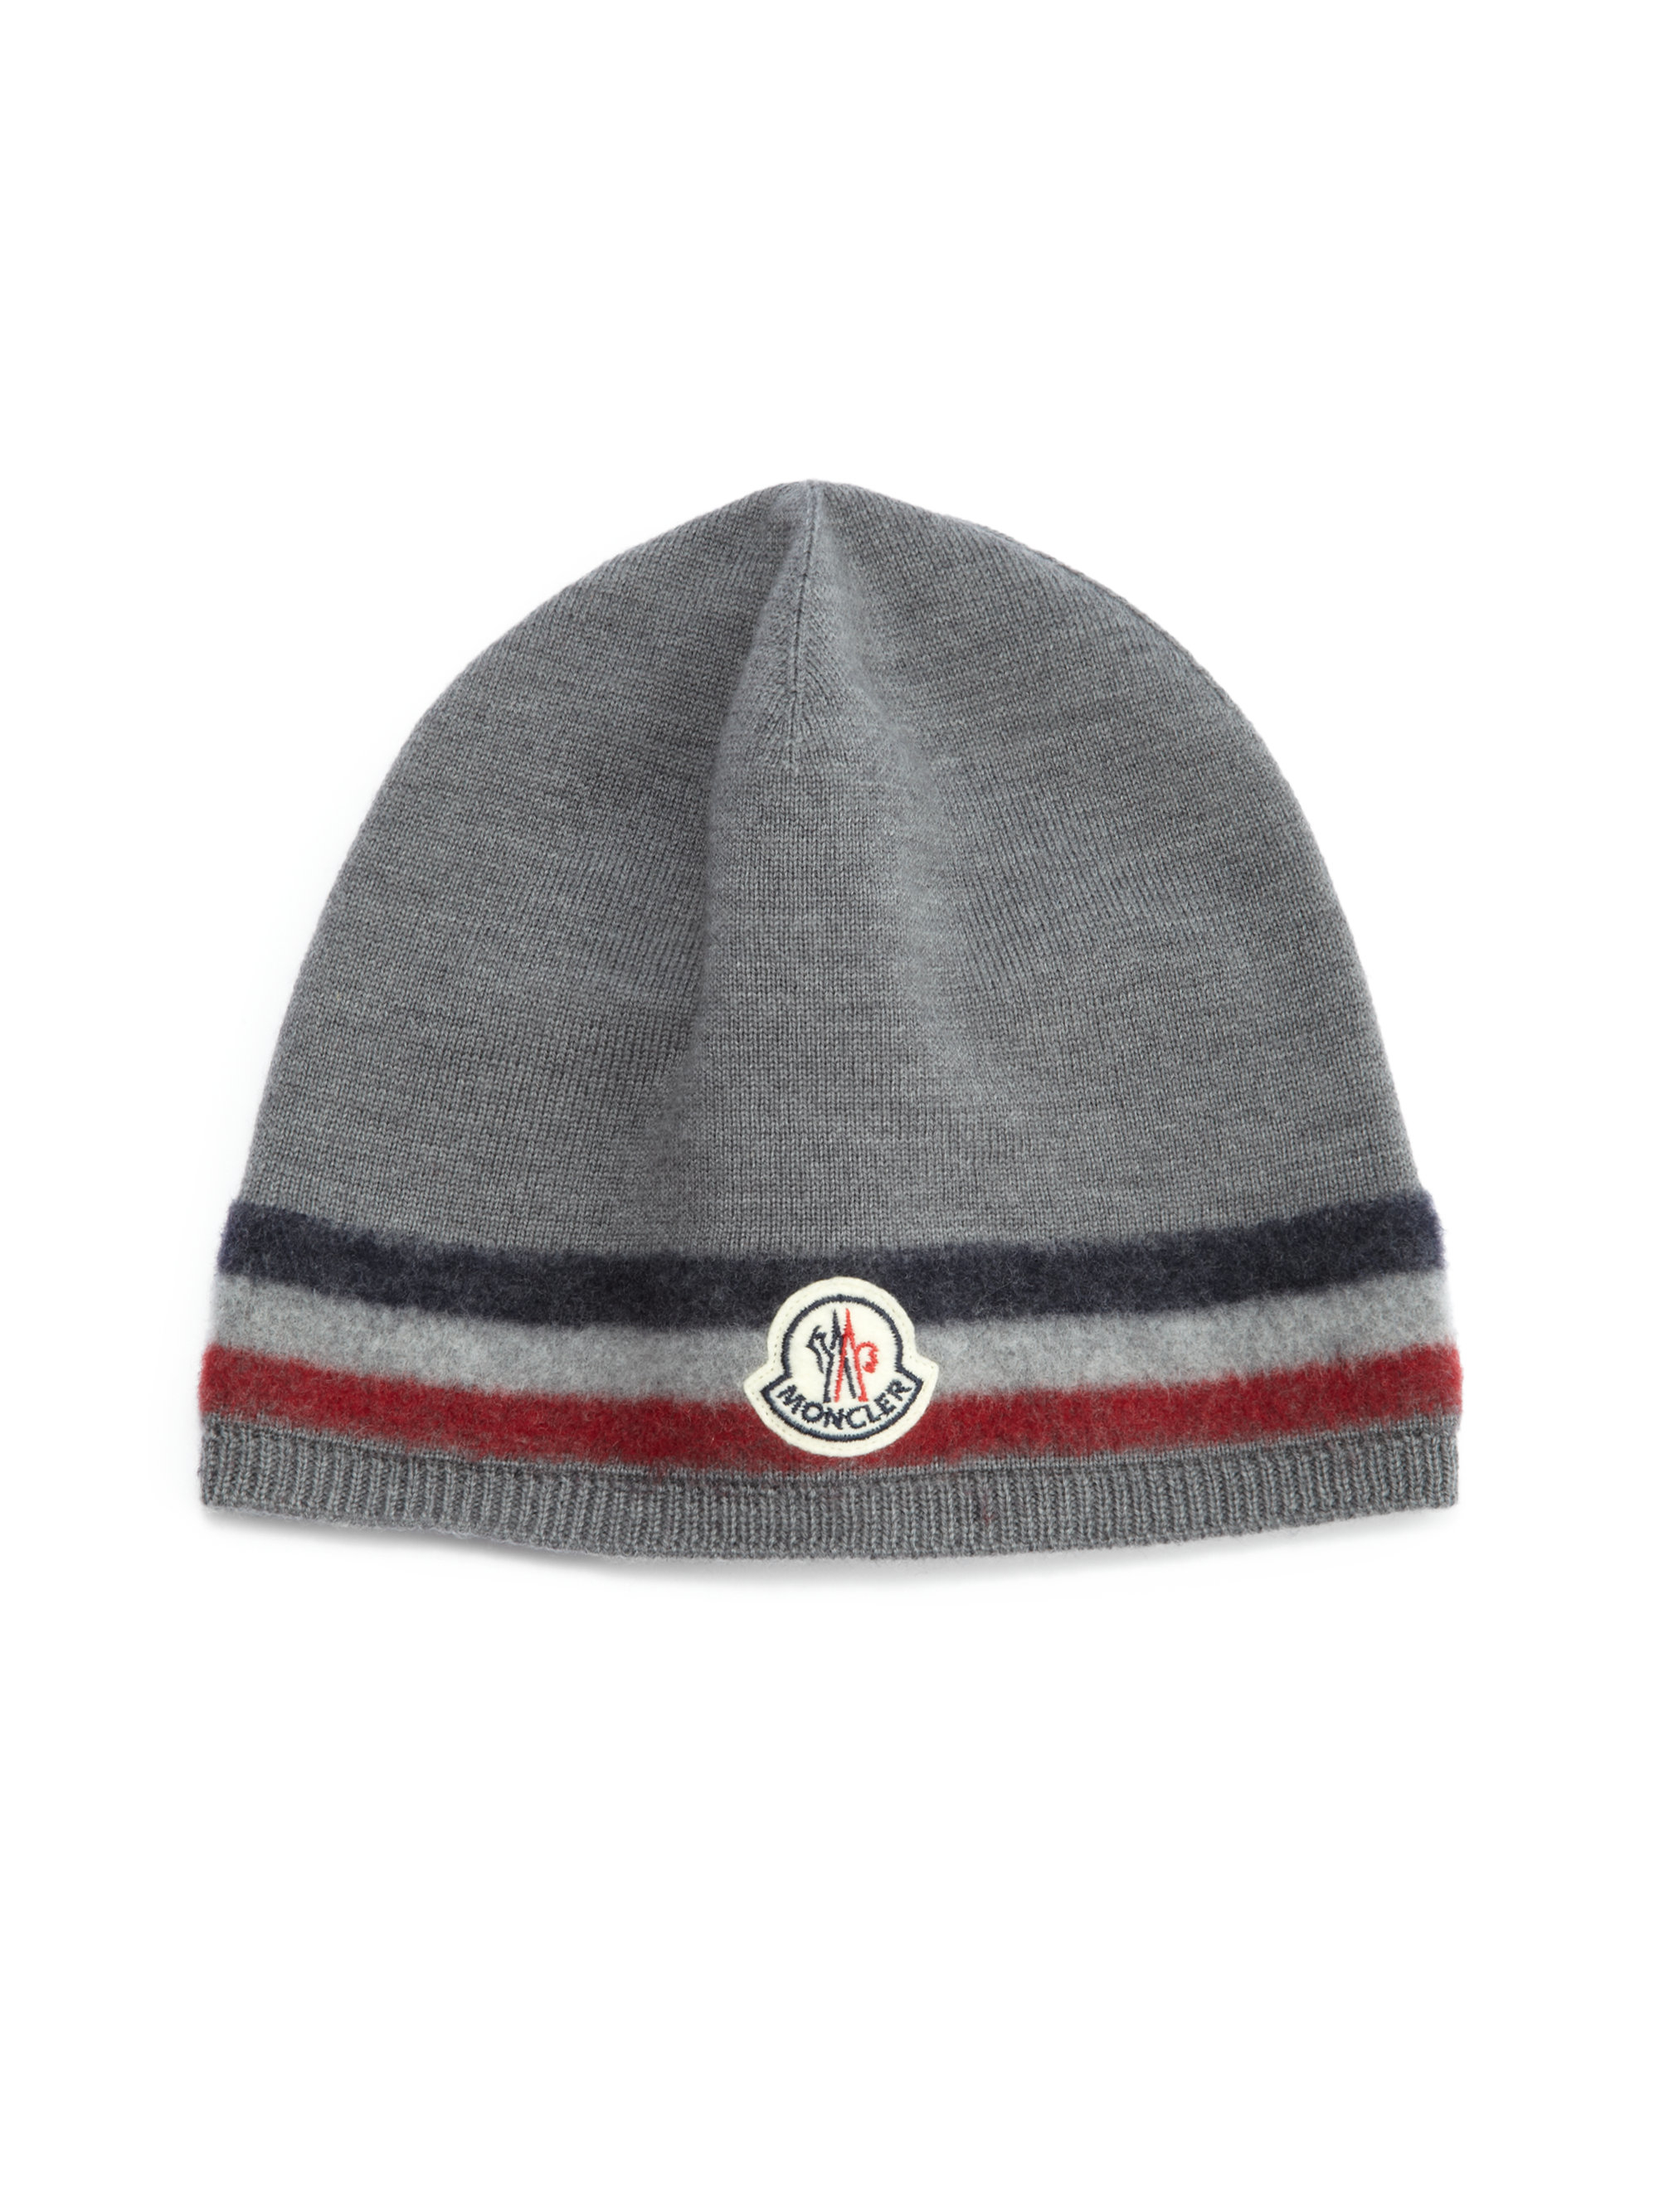 Lyst - Moncler Striped Wool Hat in Gray for Men 07f68943039